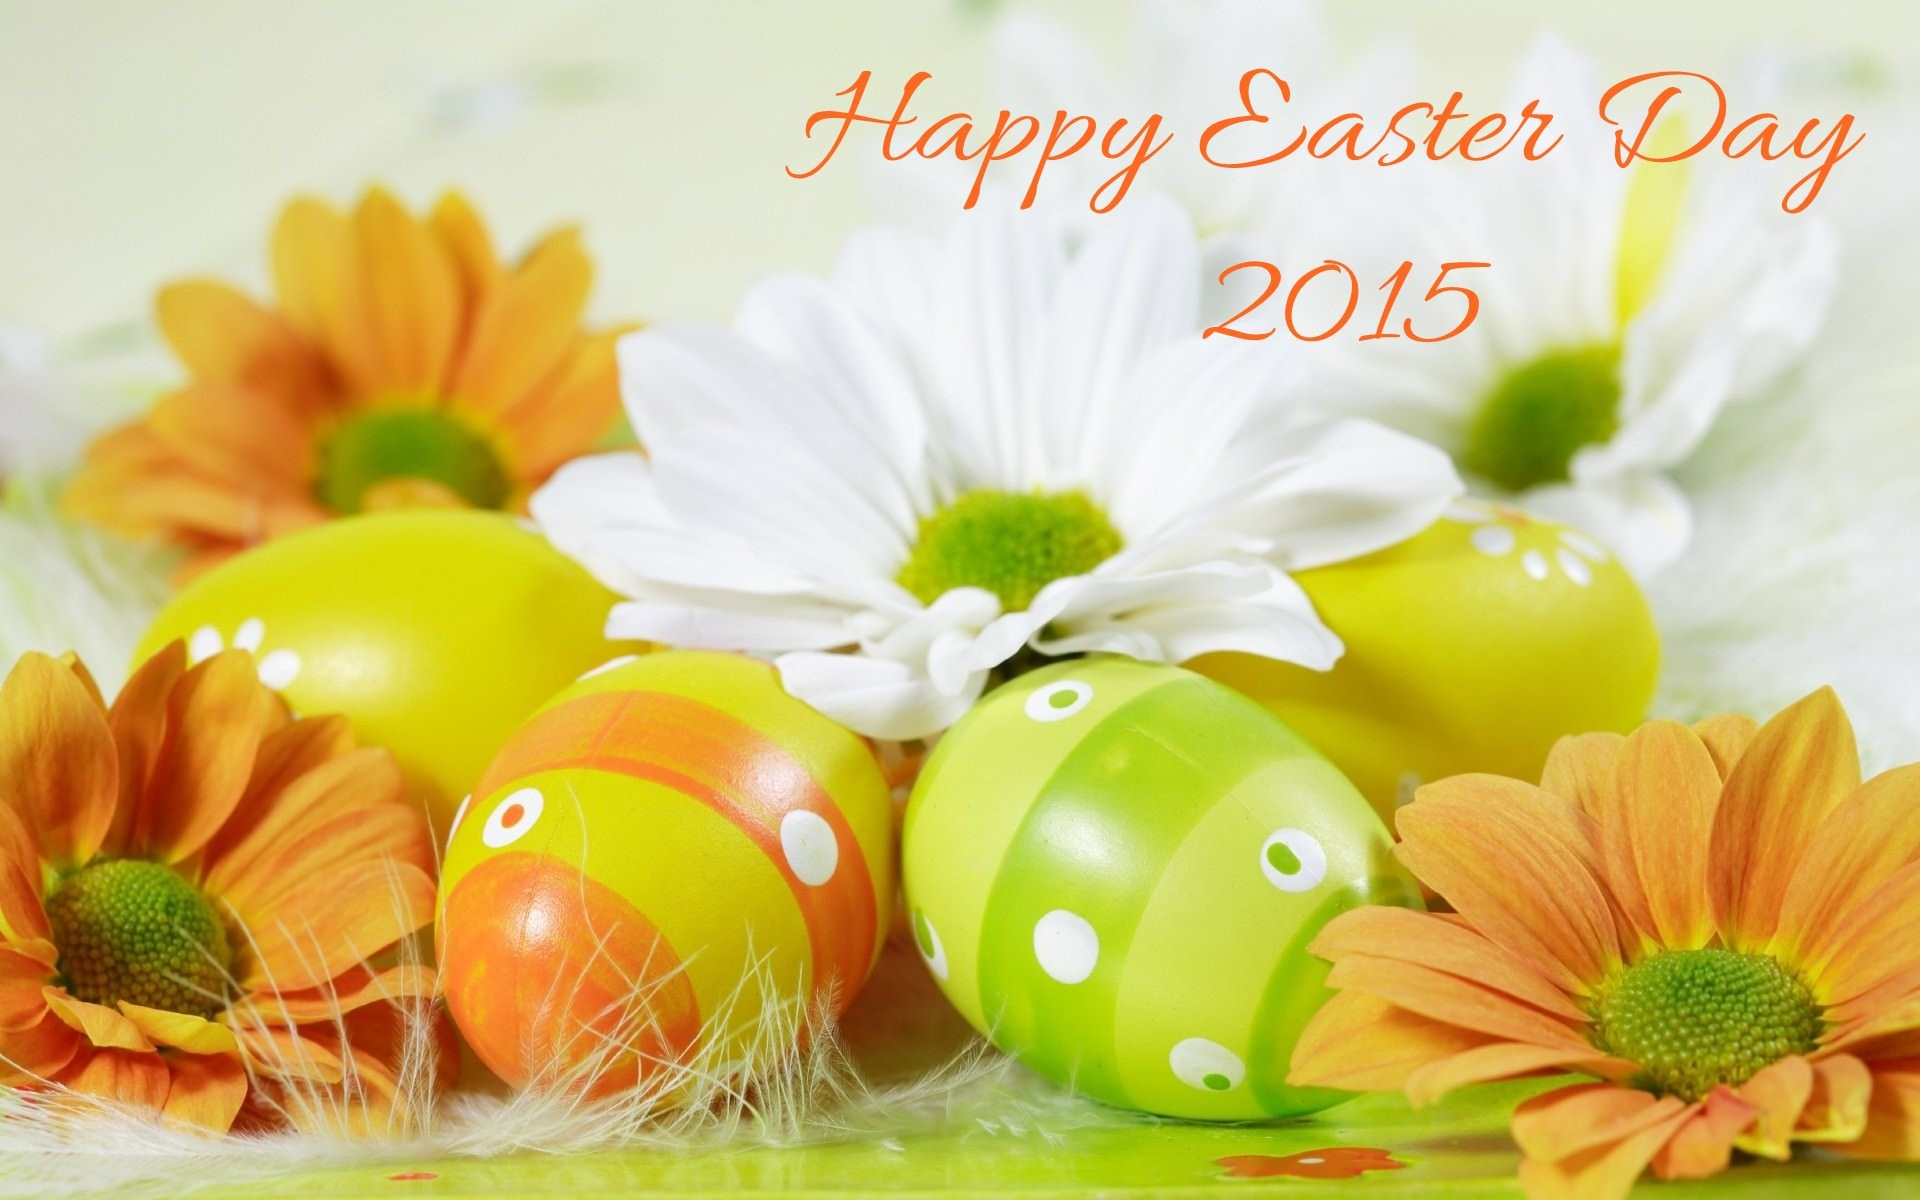 Happy-Easter-Day-2015